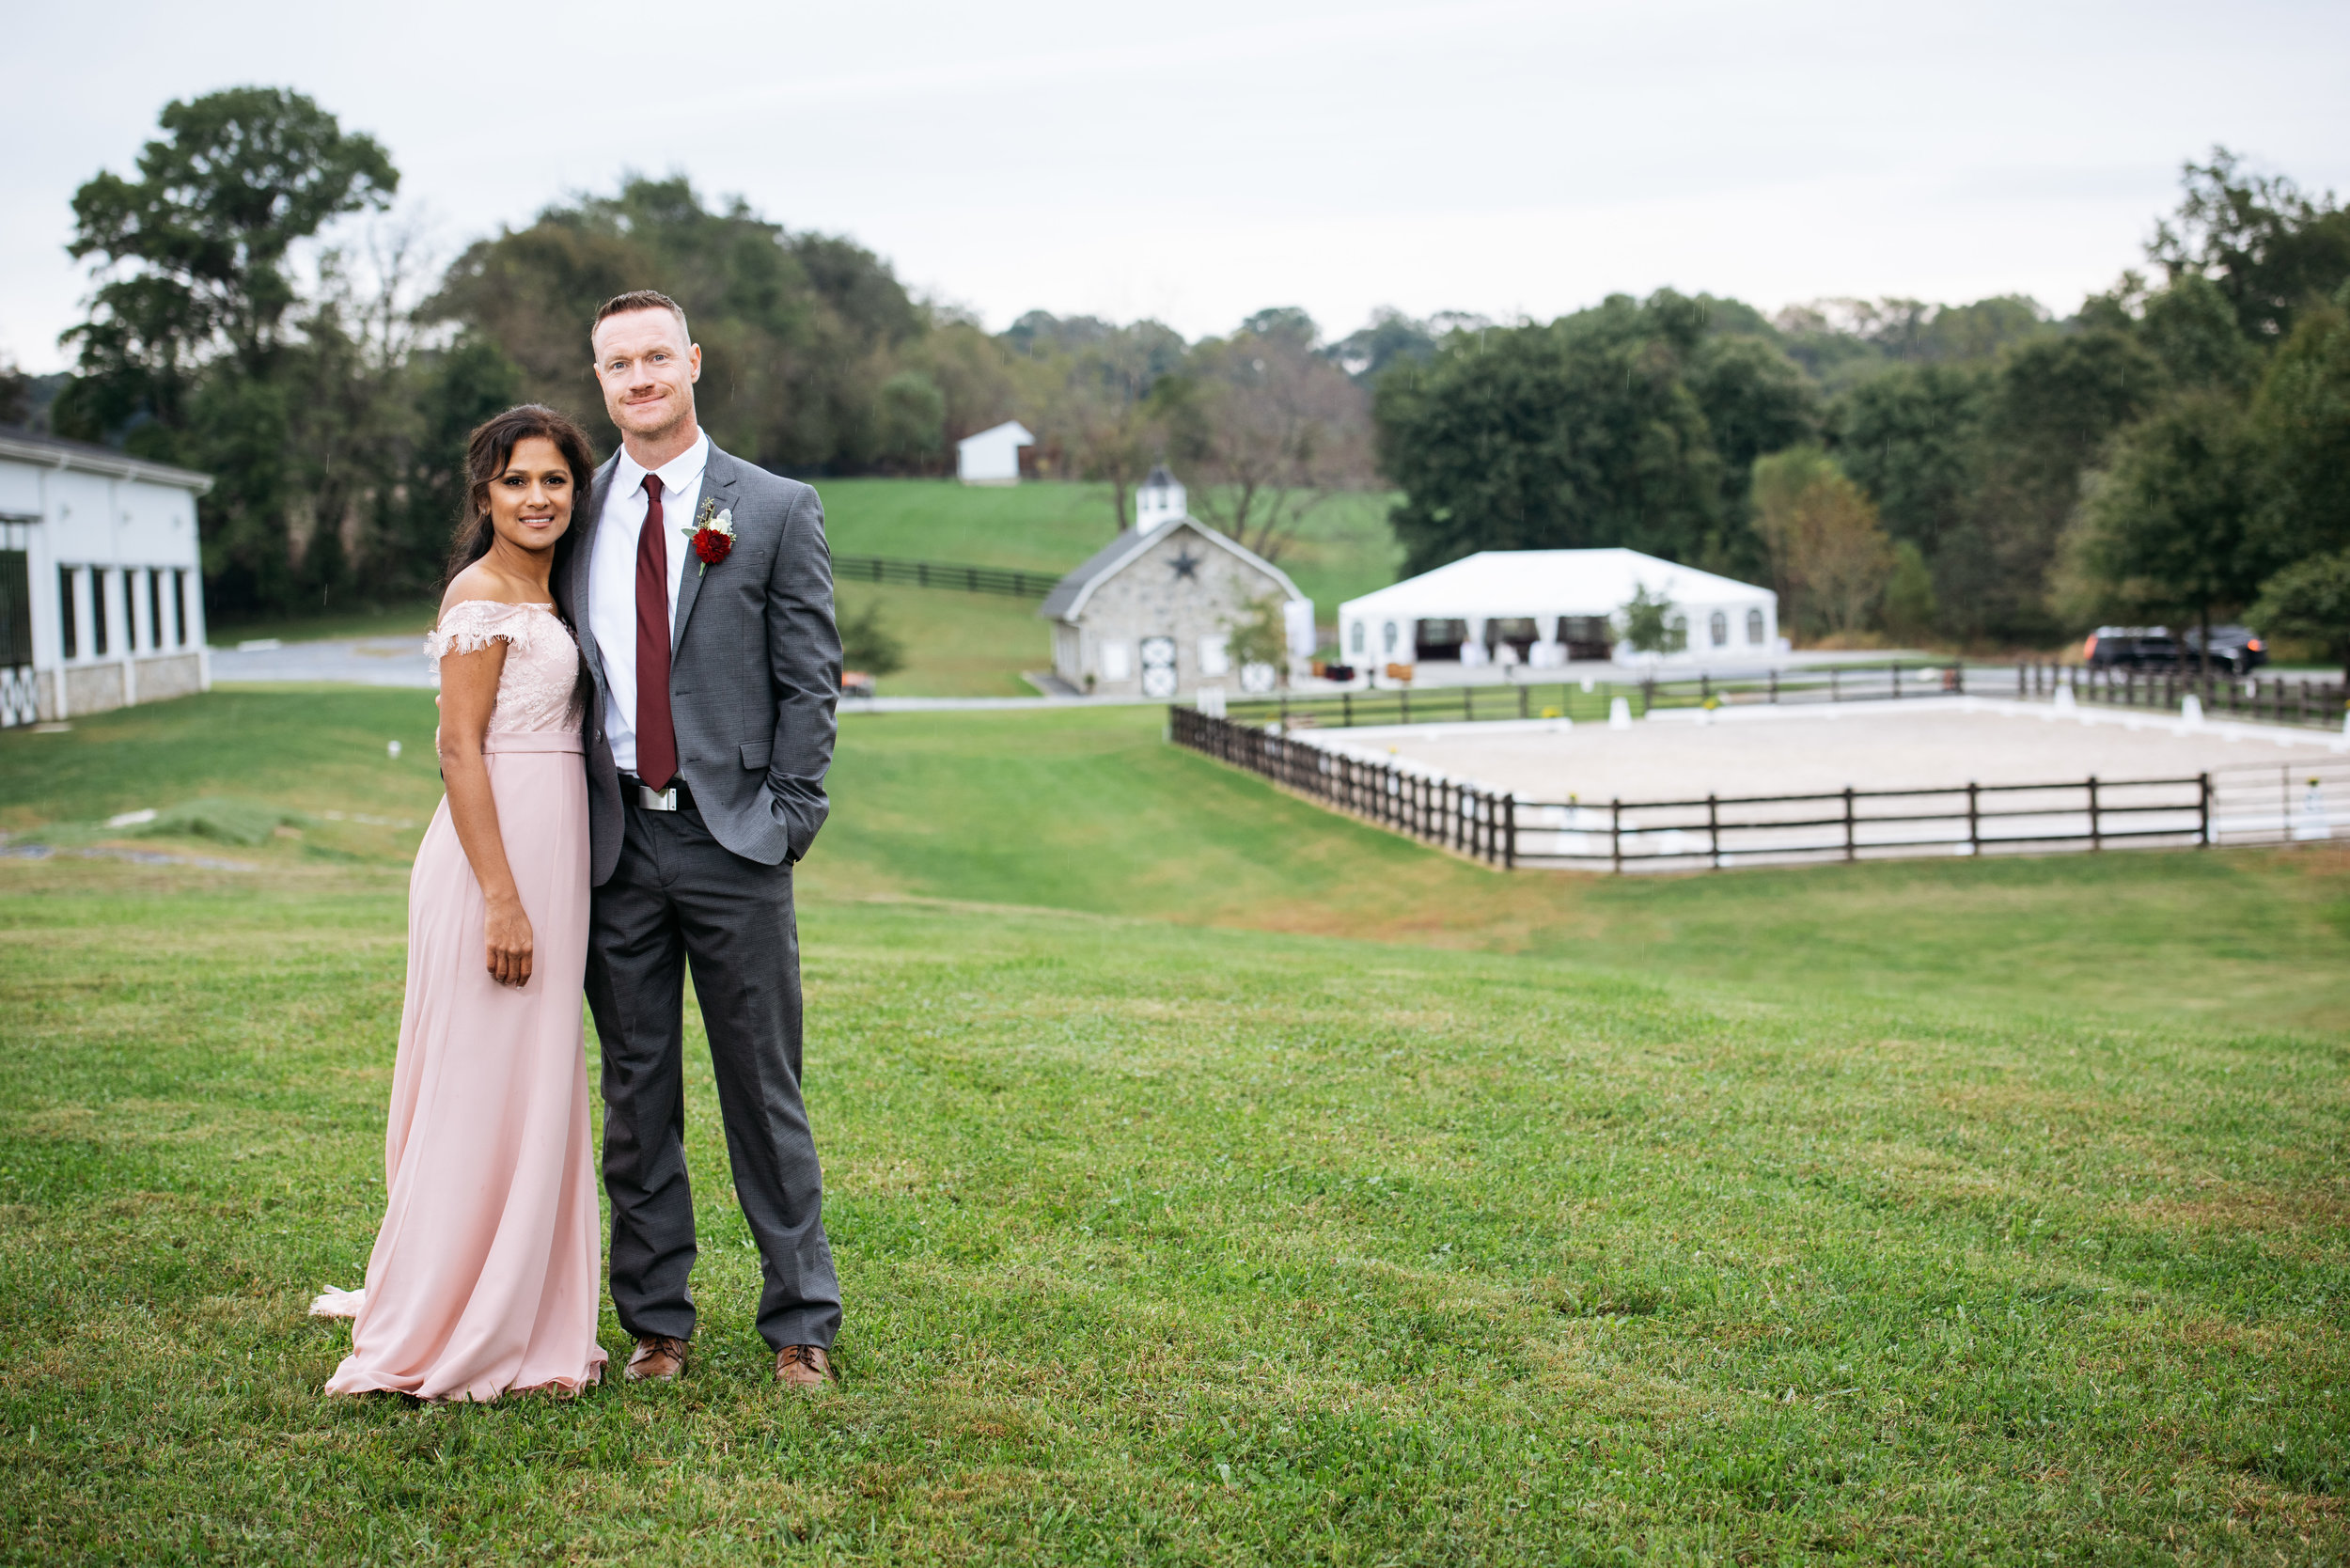 Farm Events - Weddings & Private Event Reservations